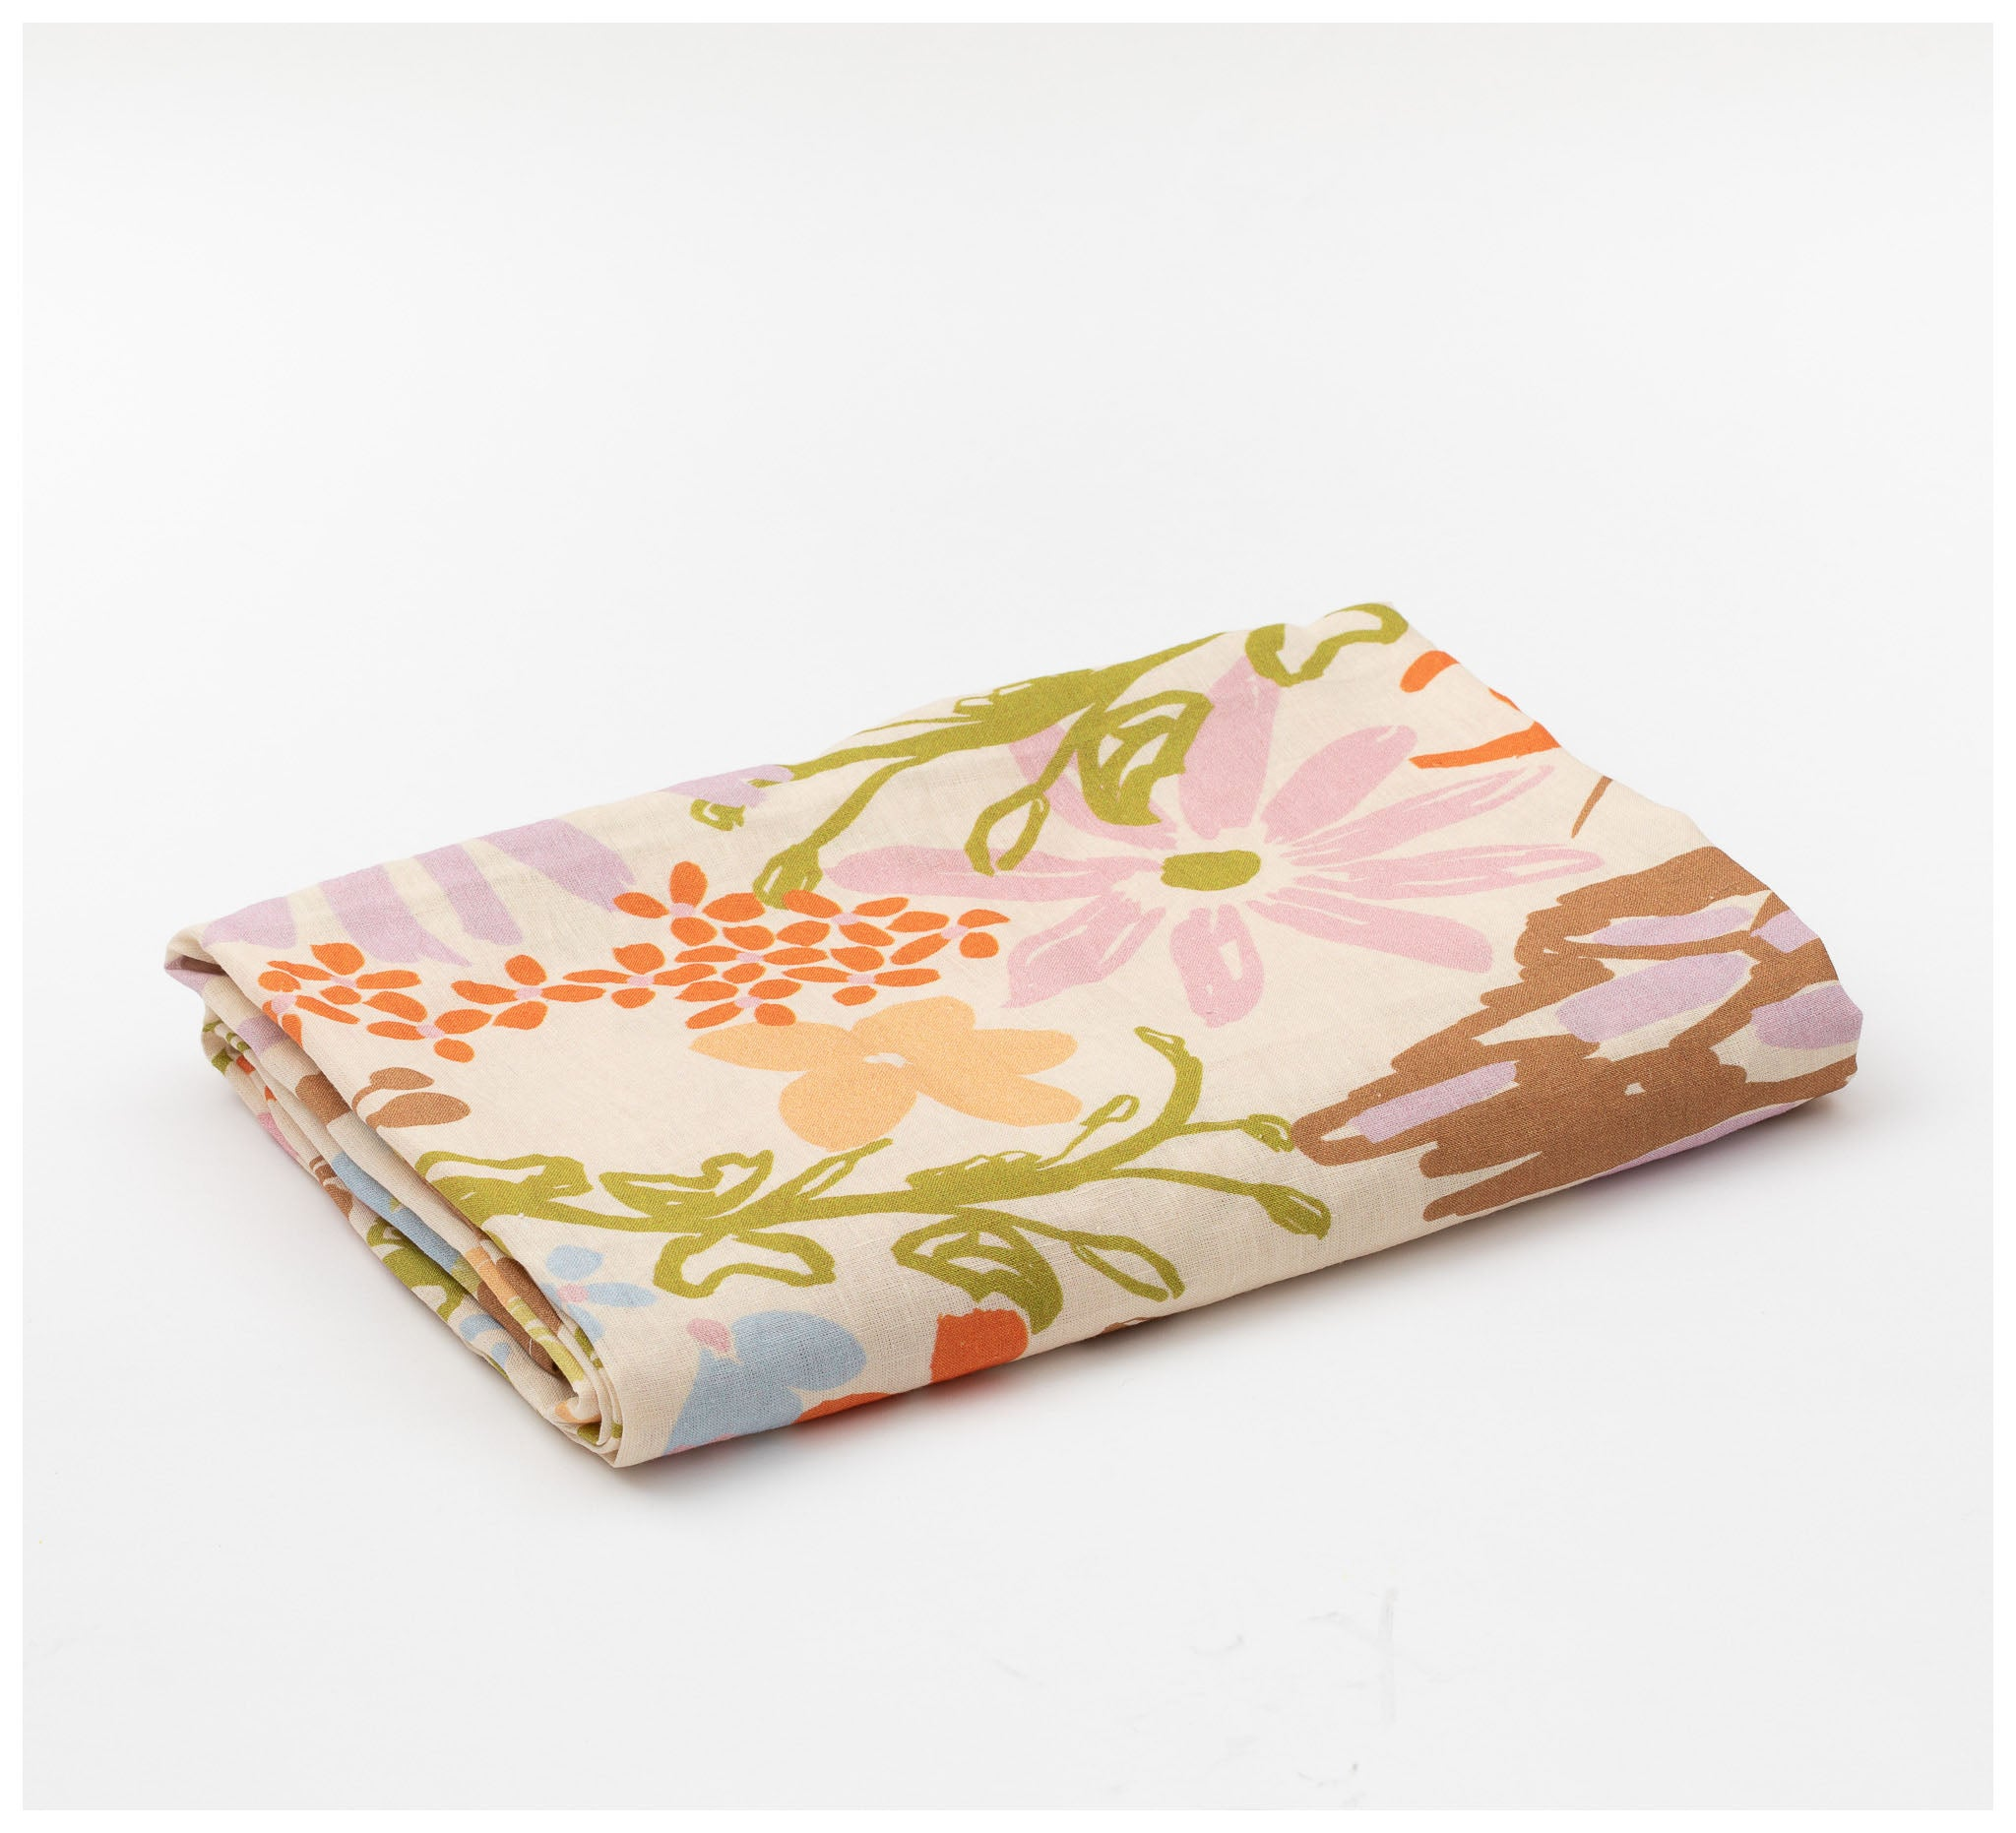 Mosey Me - Garden Tablecloth